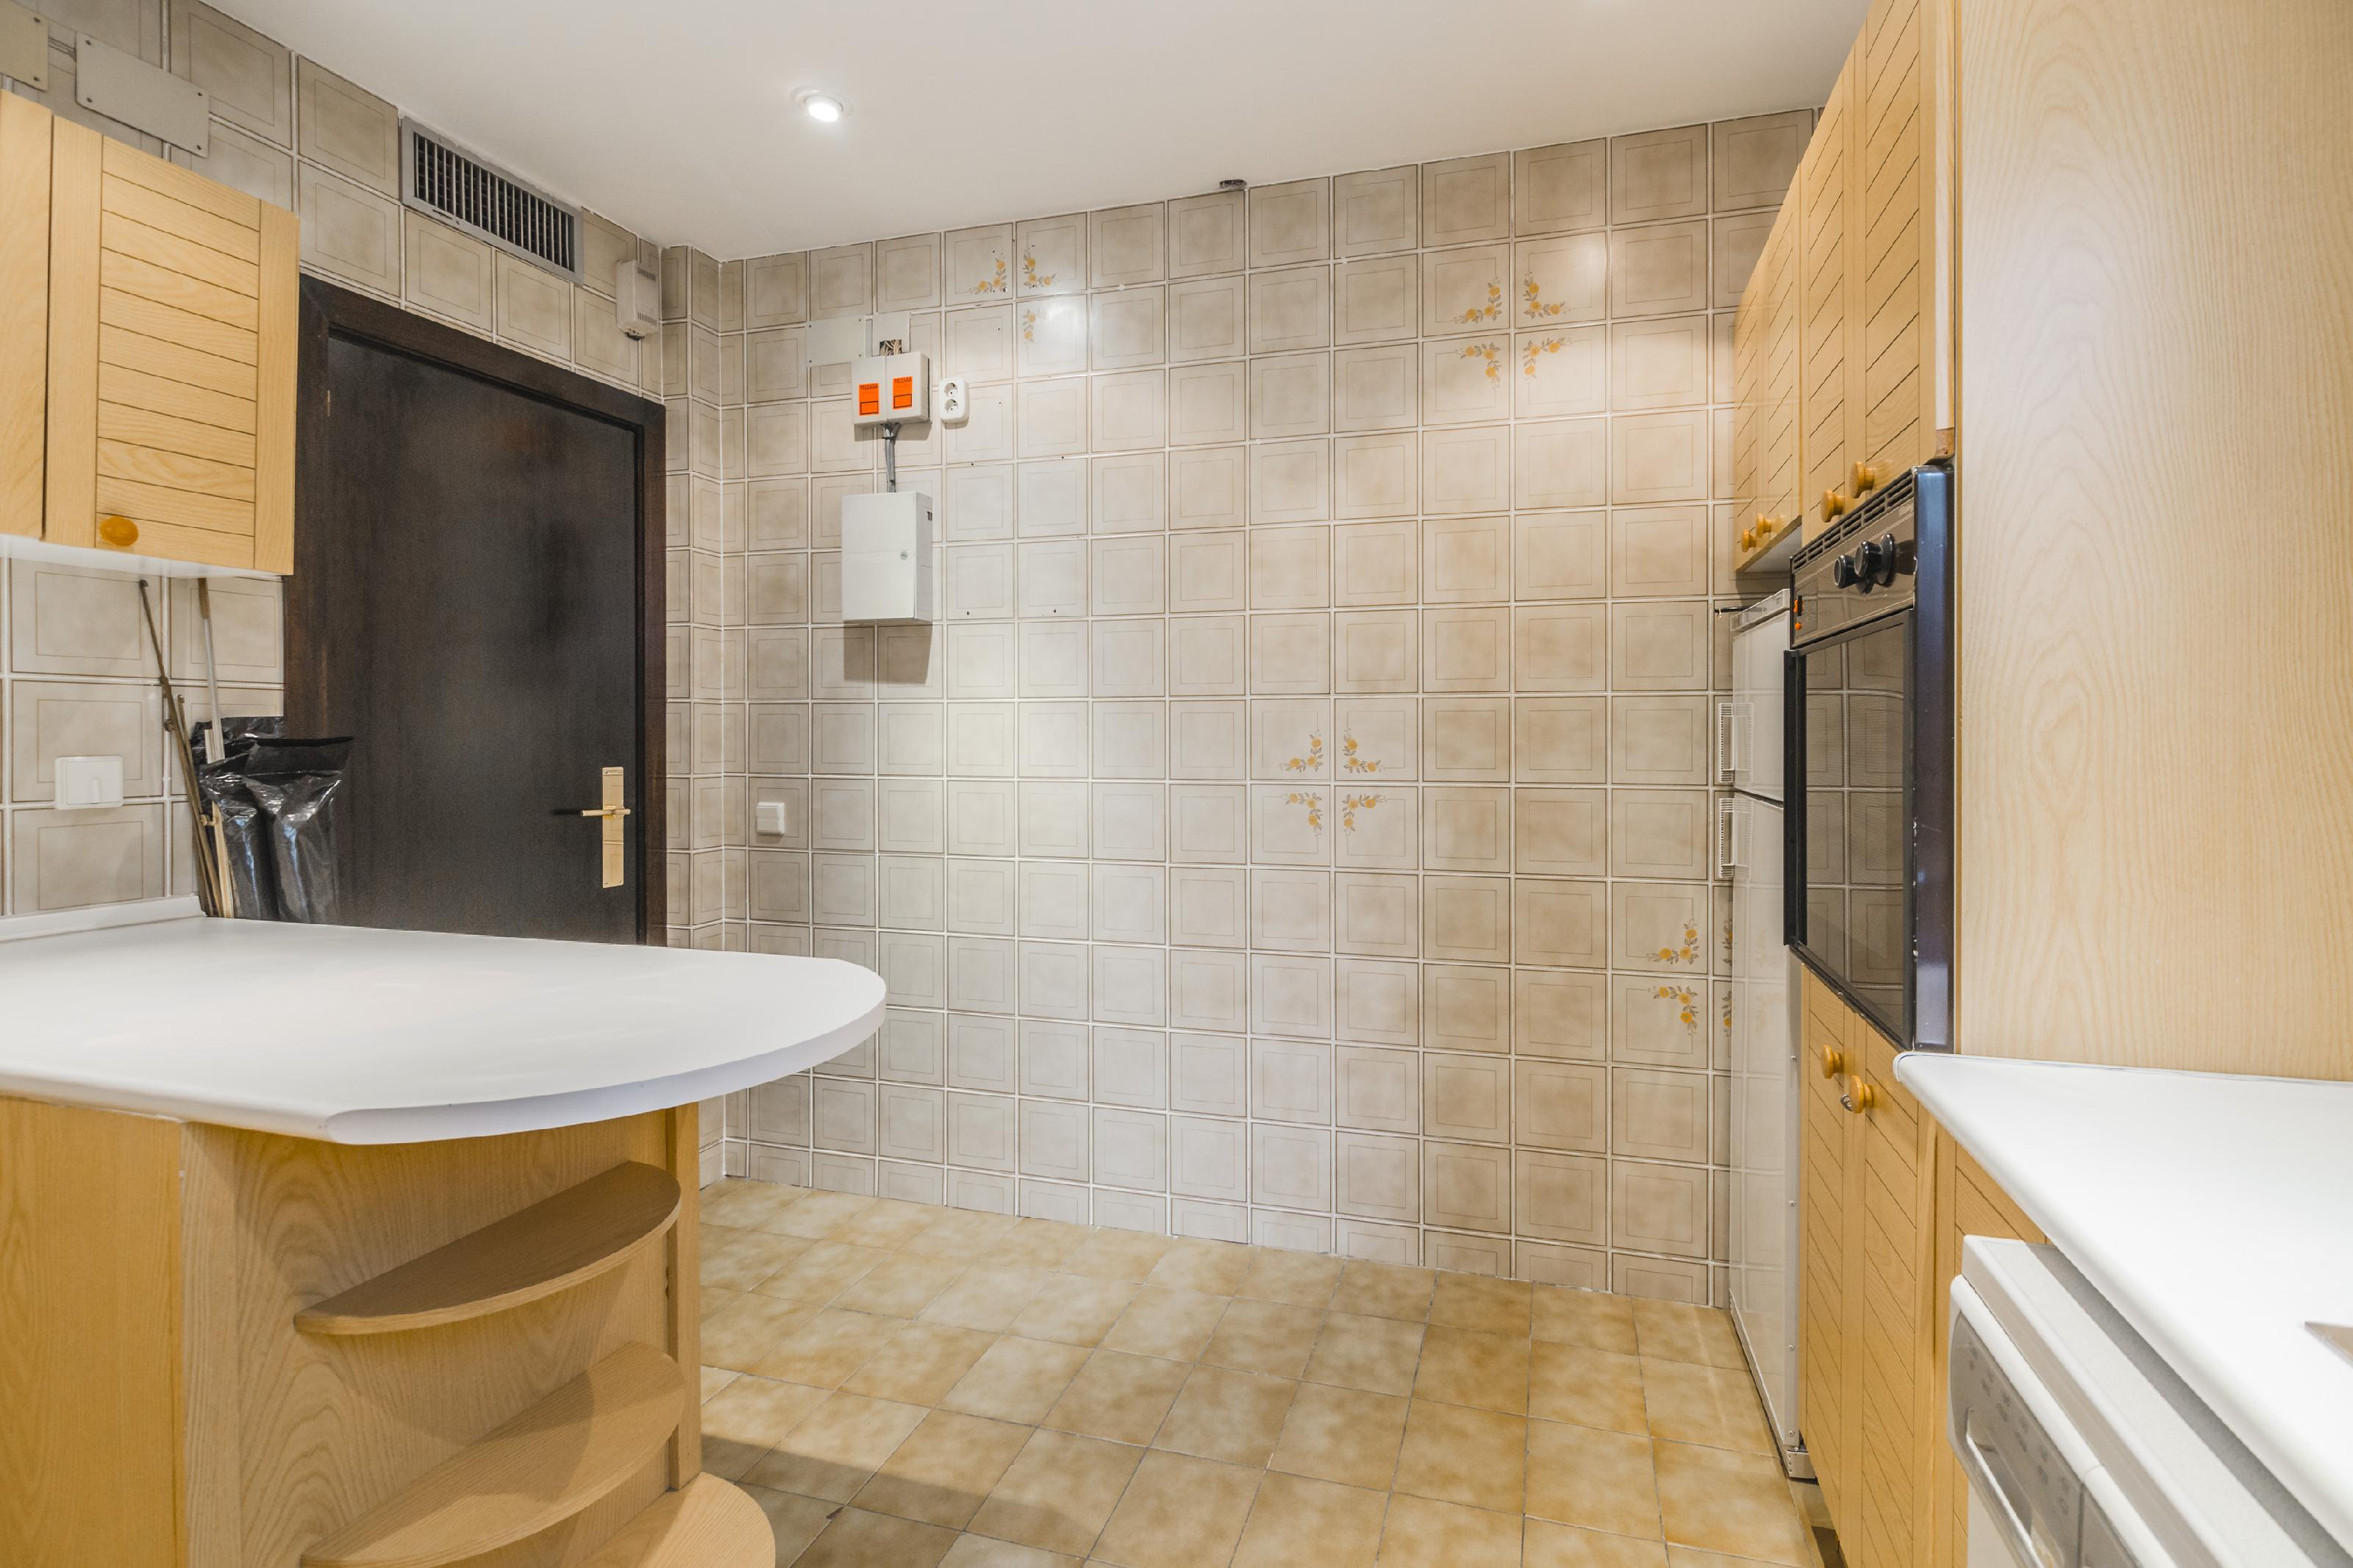 223855 Penthouse for sale in Sarrià-Sant Gervasi, Sant Gervasi-Galvany 27